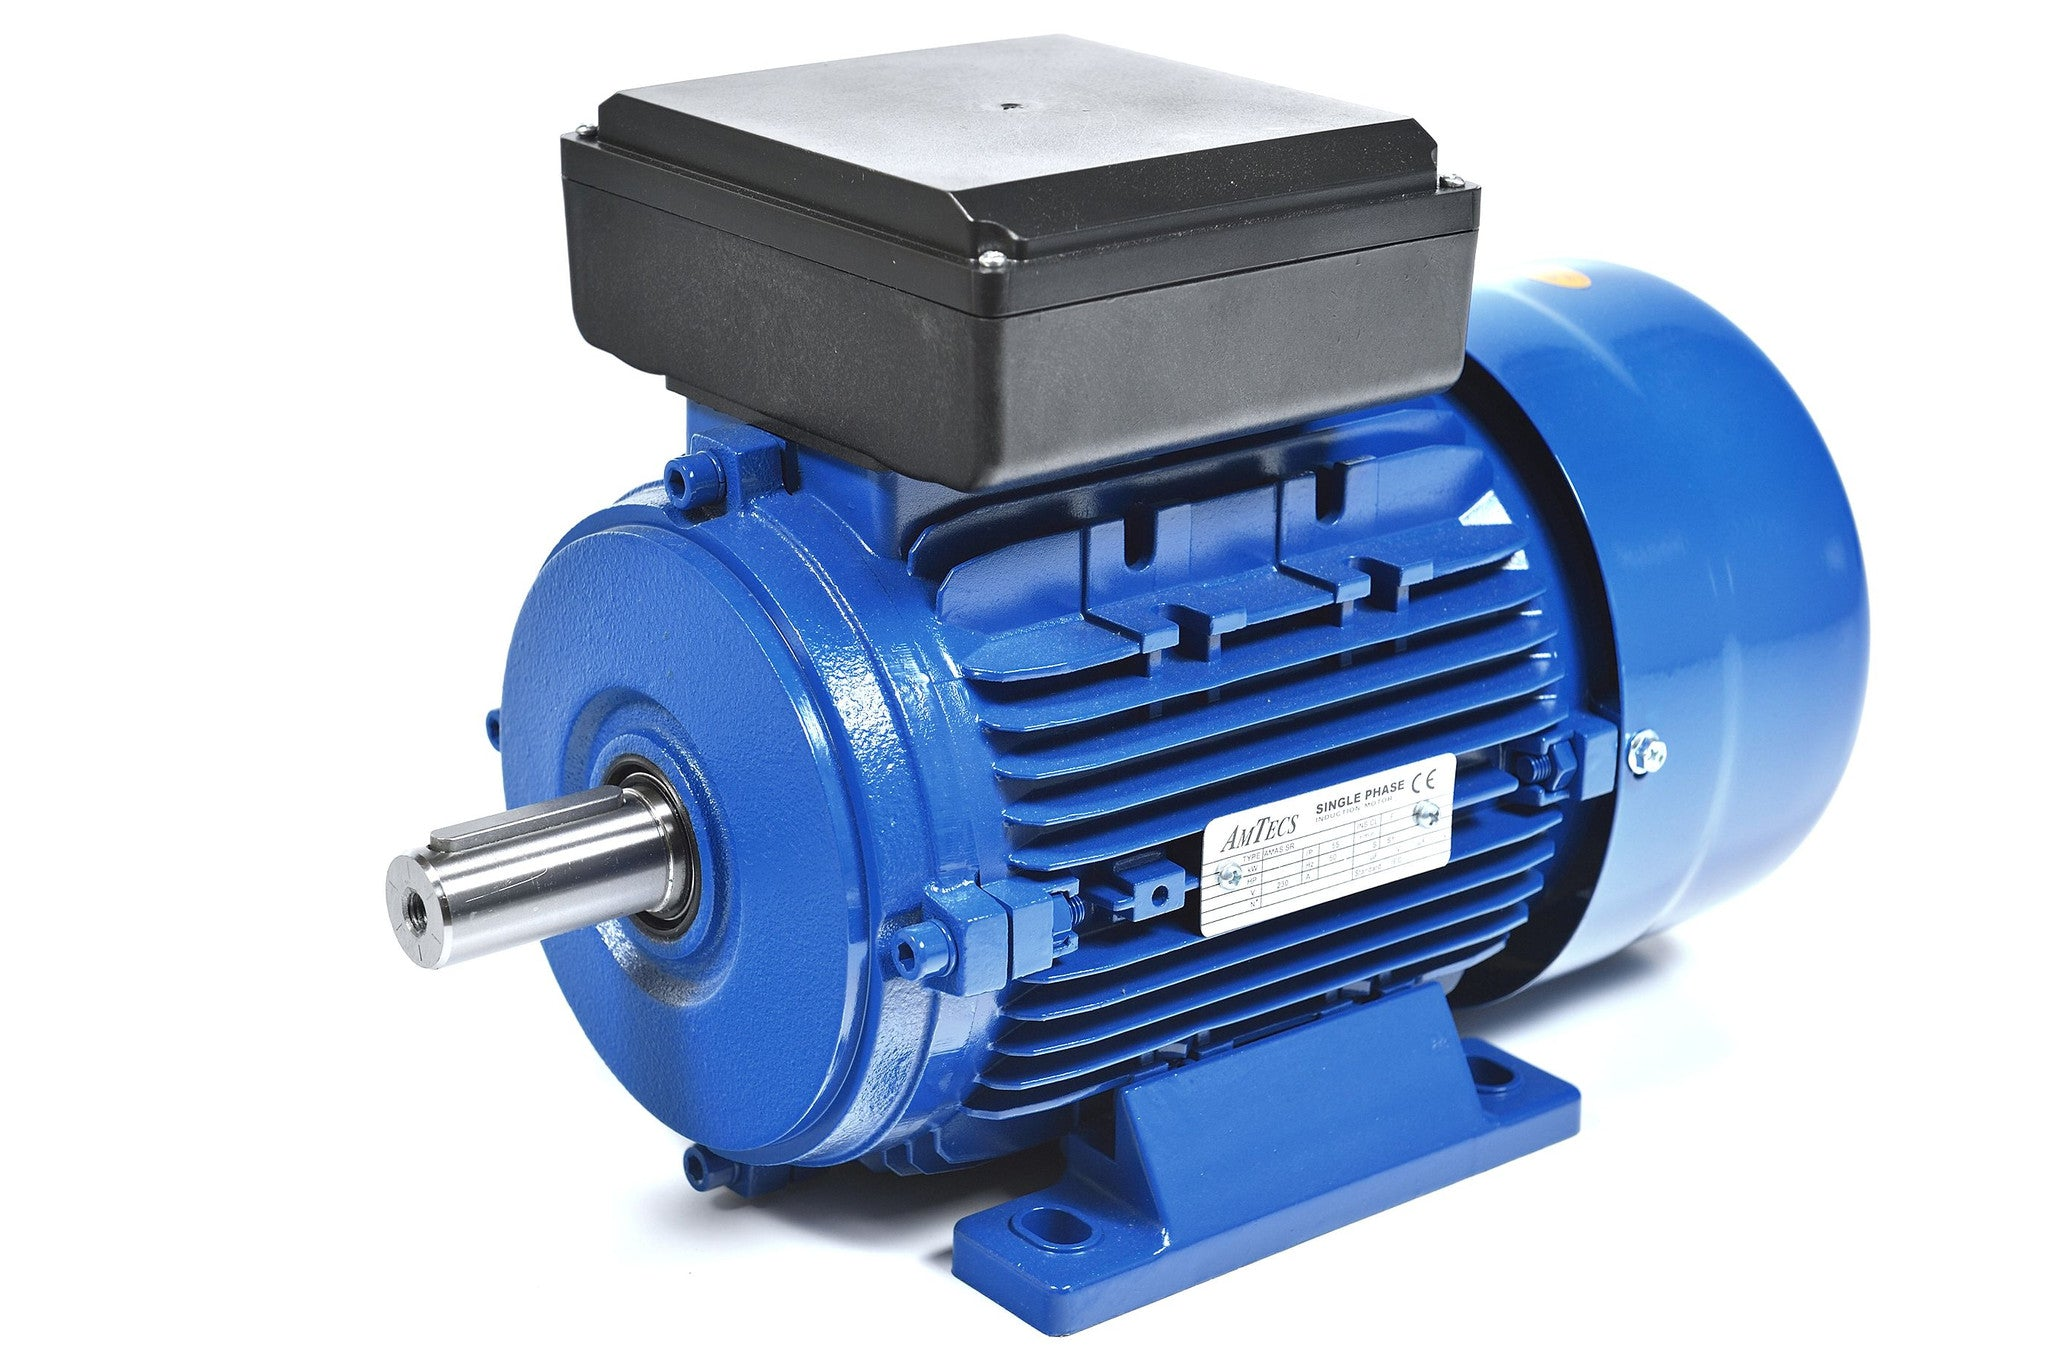 Single Phase 230v Electric Motor 2.2Kw 2 pole 3000rpm with face mount